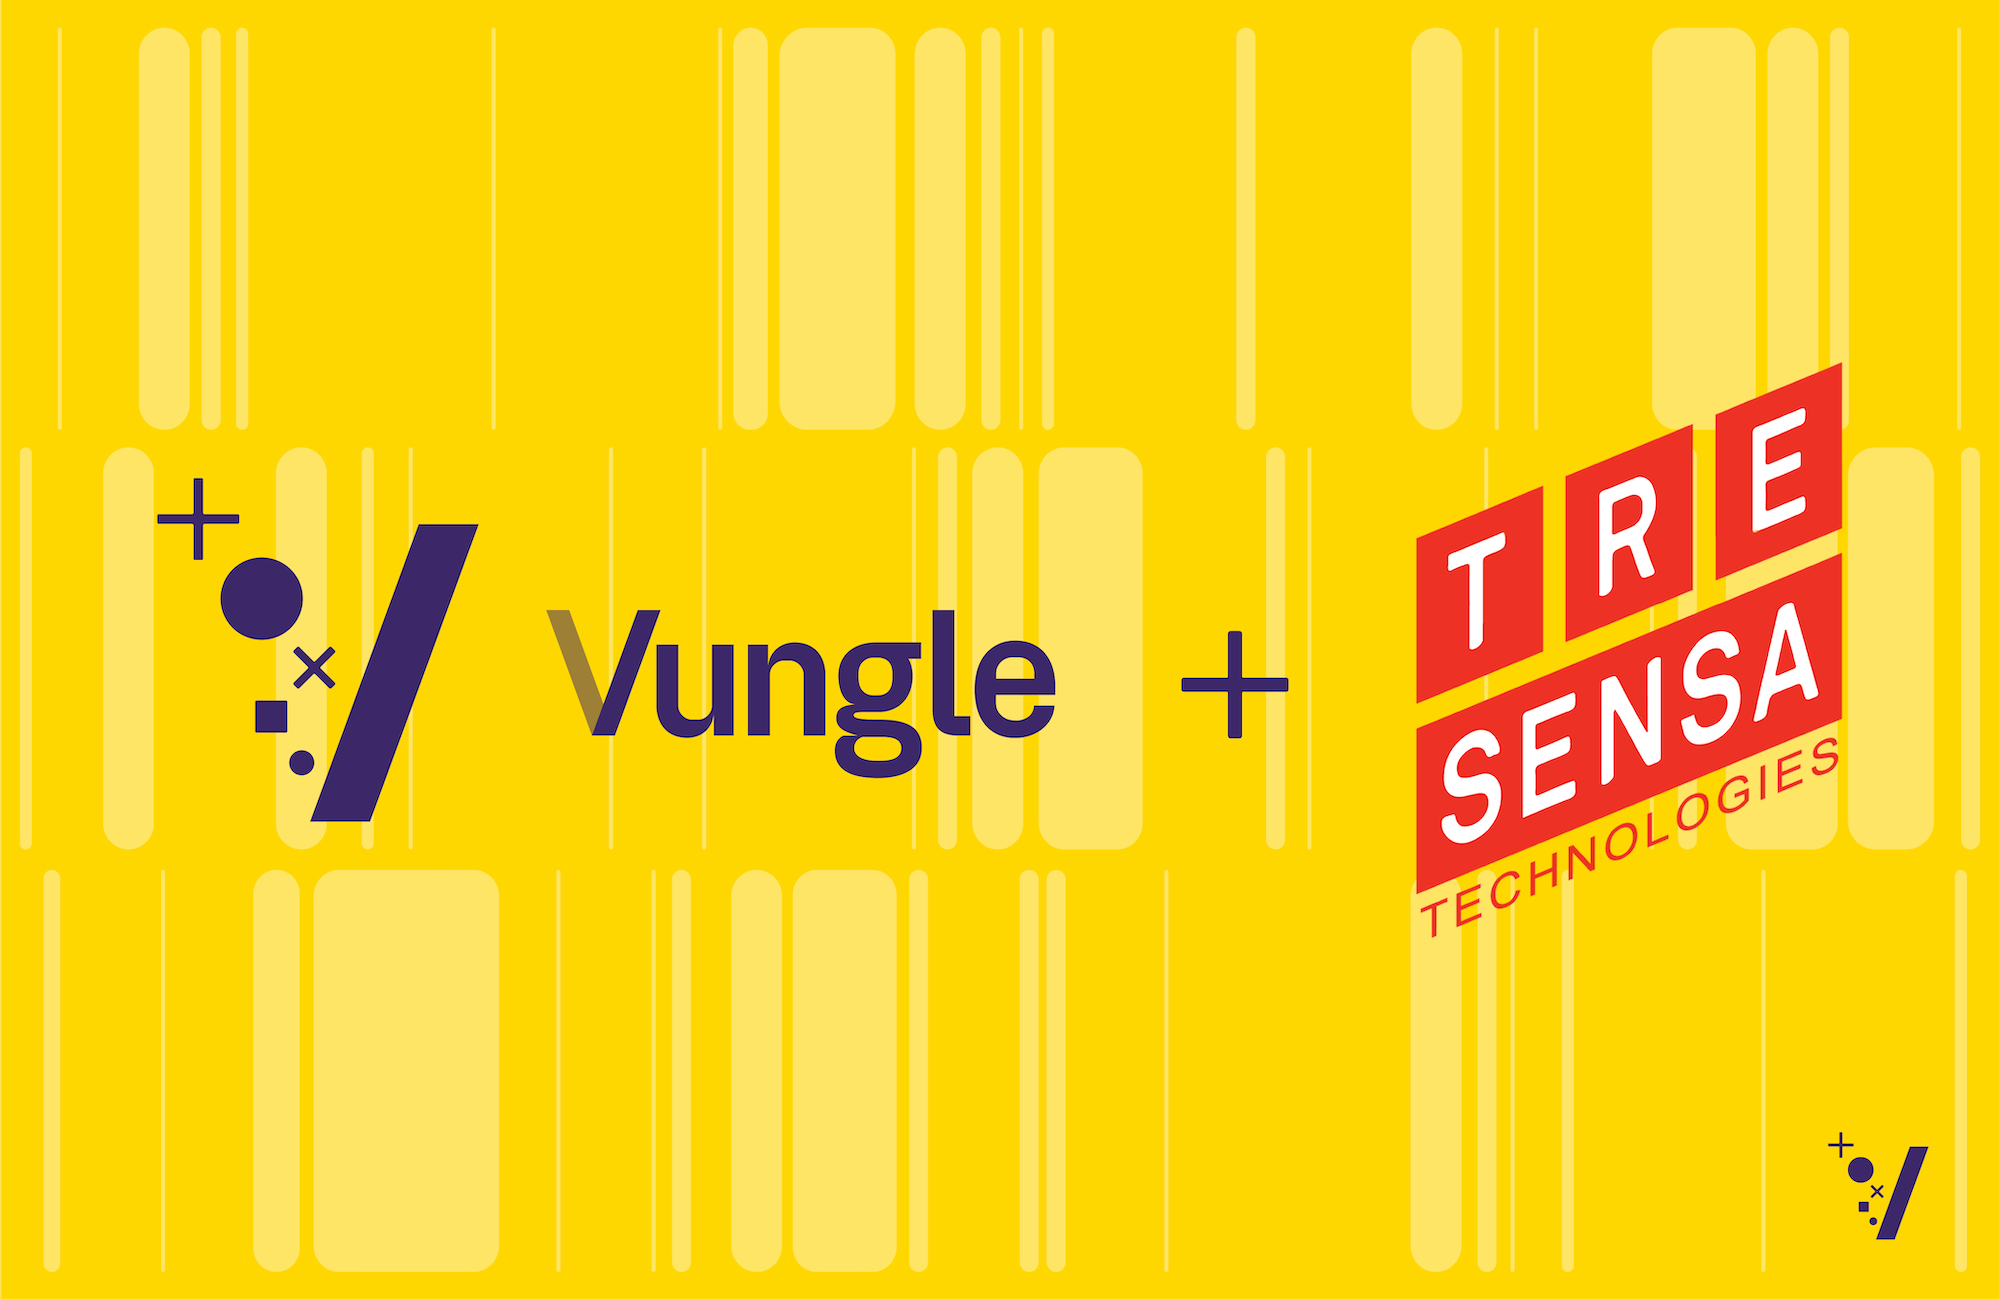 Vungle Extends Creative Capabilities With the Acquisition of TreSensa Technologies